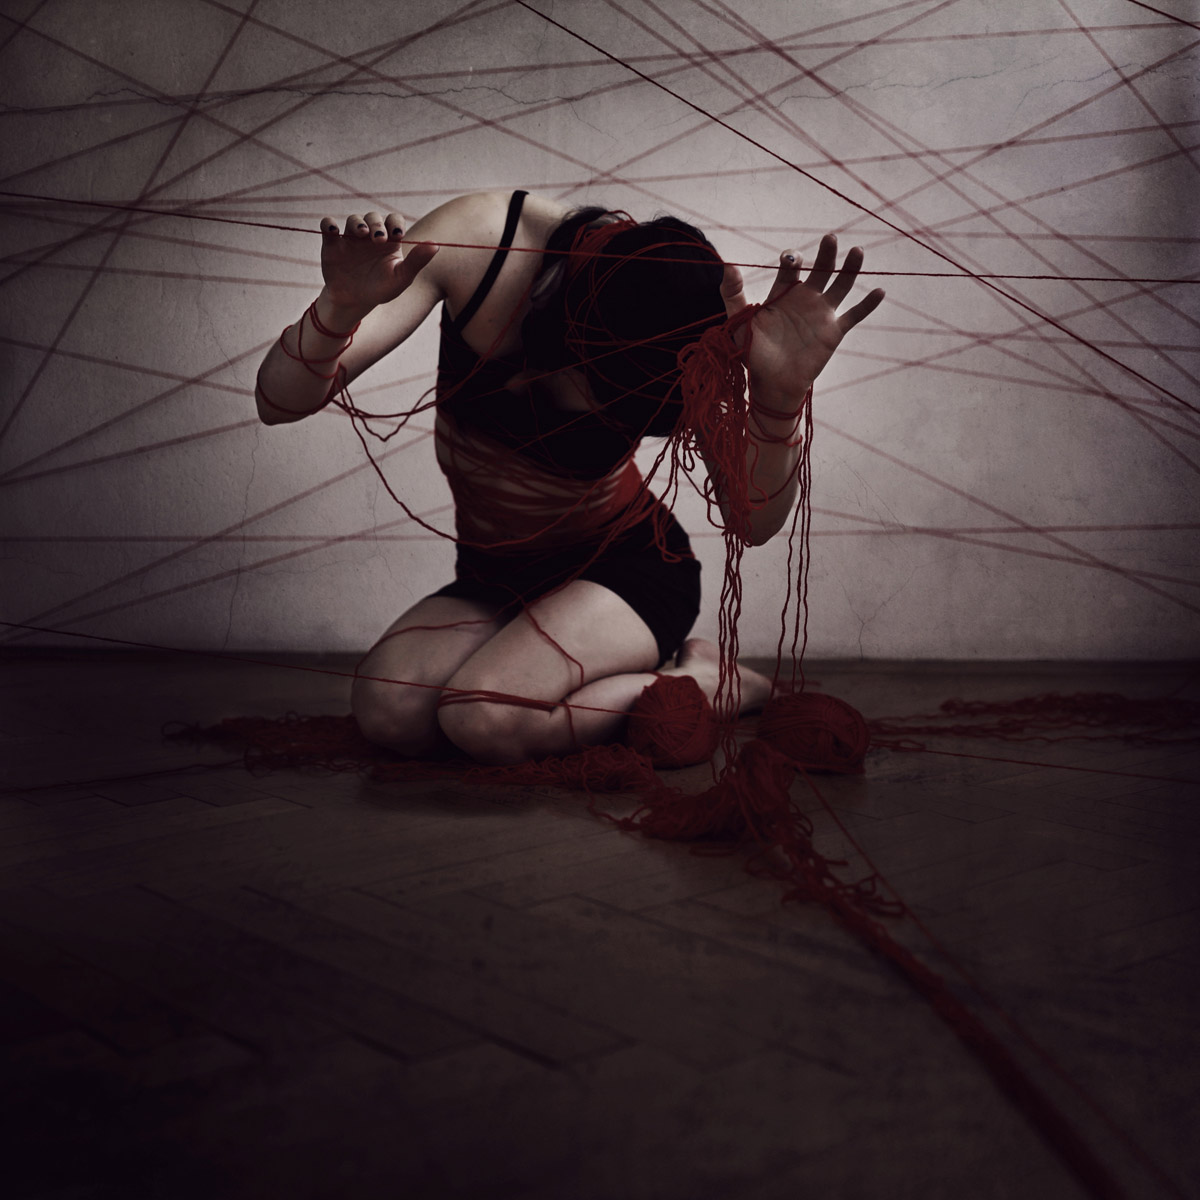 Struggle | Anja Matko | String of life